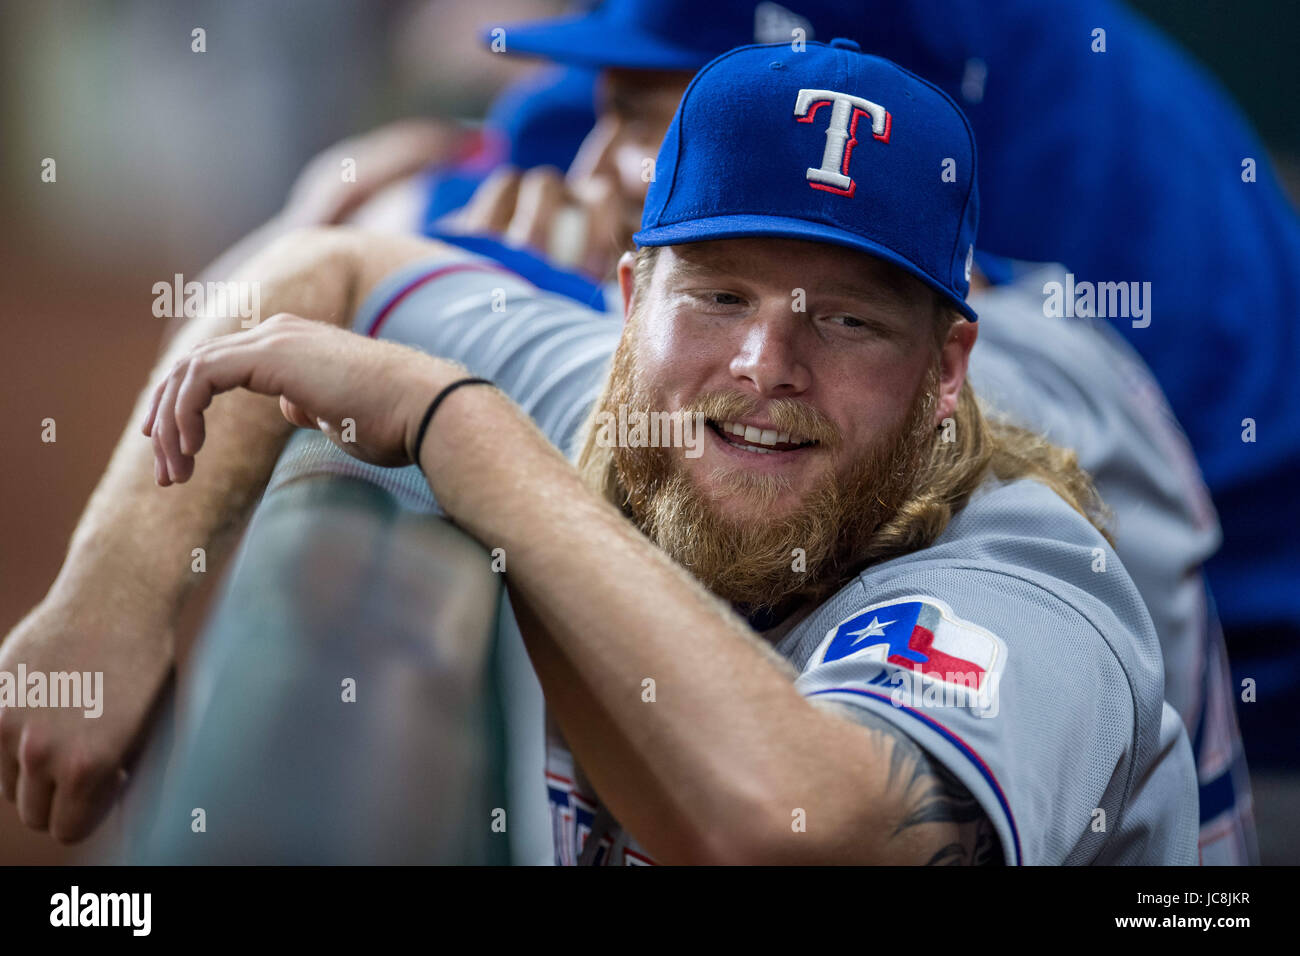 Houston, TX, USA. 13th June, 2017. Texas Rangers pitcher A.J. Griffin (64) smiles in the dugout during a Major League - Stock Image